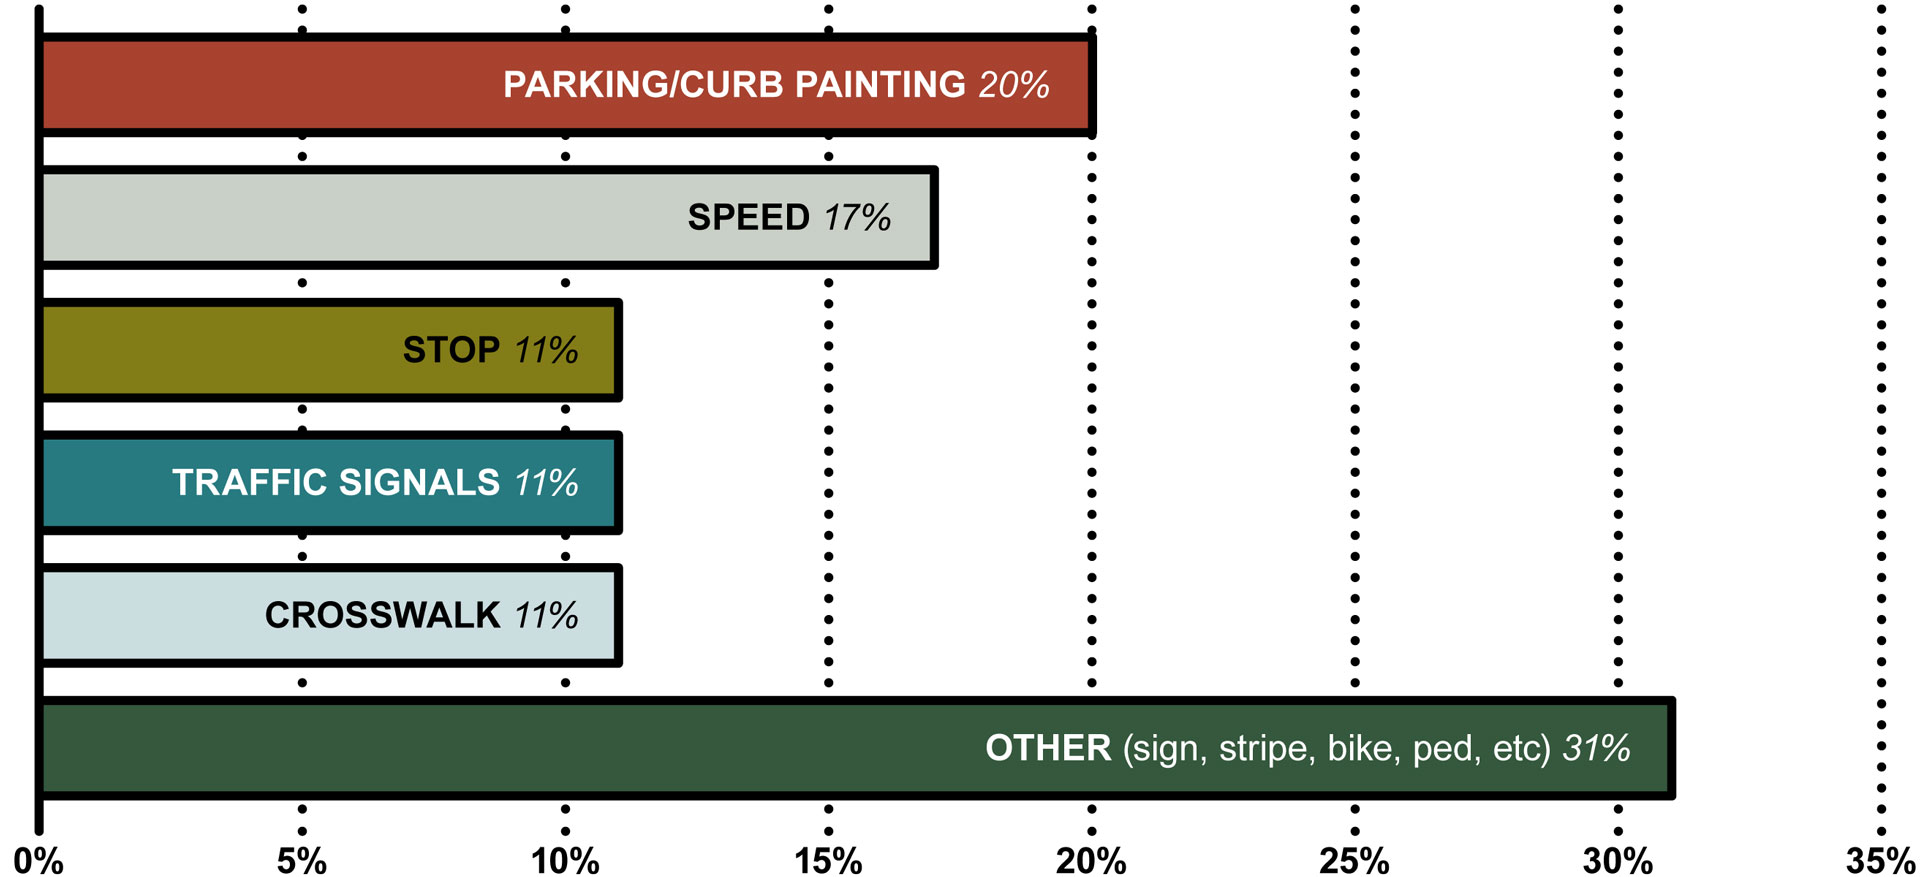 Citizen Traffic Request data from 2015 showing 20% requesting parking/curb painting, 17% speed, 11% stop, 11% traffic signals, 11% crosswalk, 31% other (sign, stripe, bike, ped, etc)